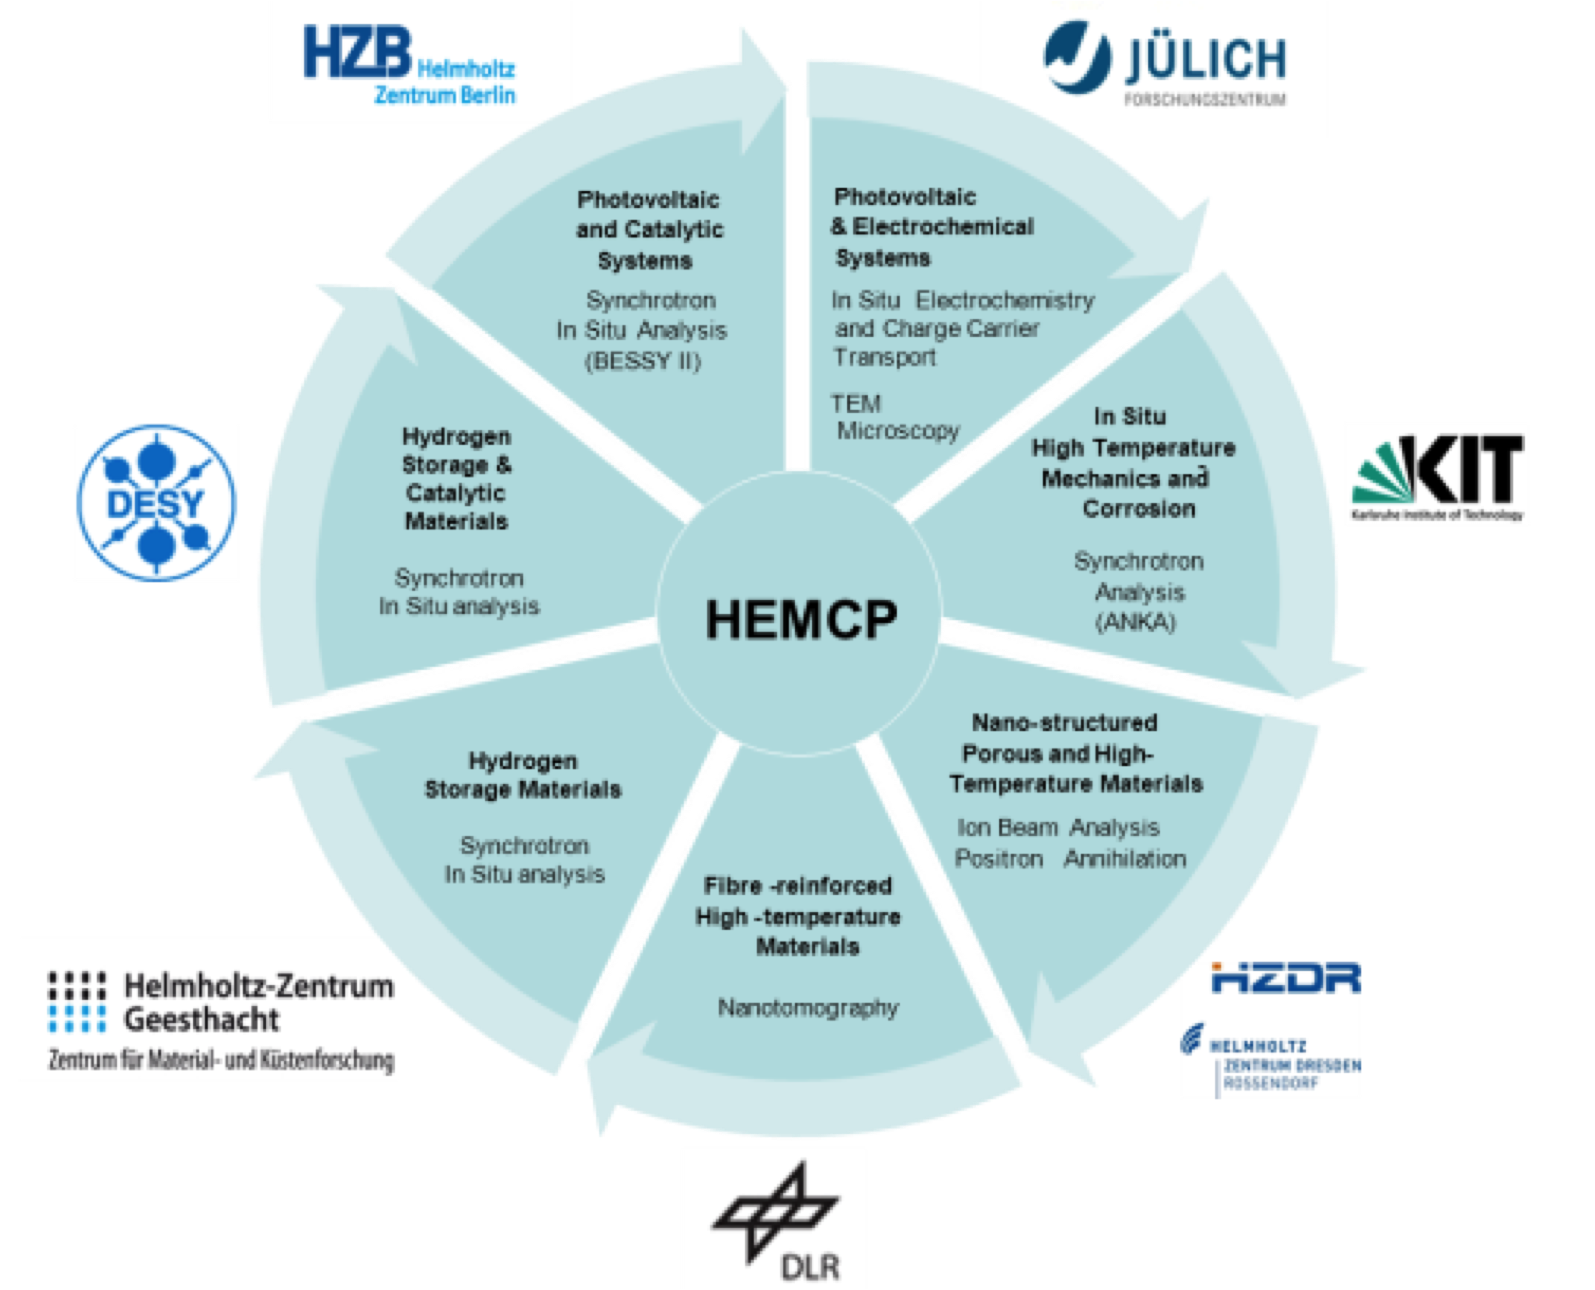 HEMCP - Institutes and instruments